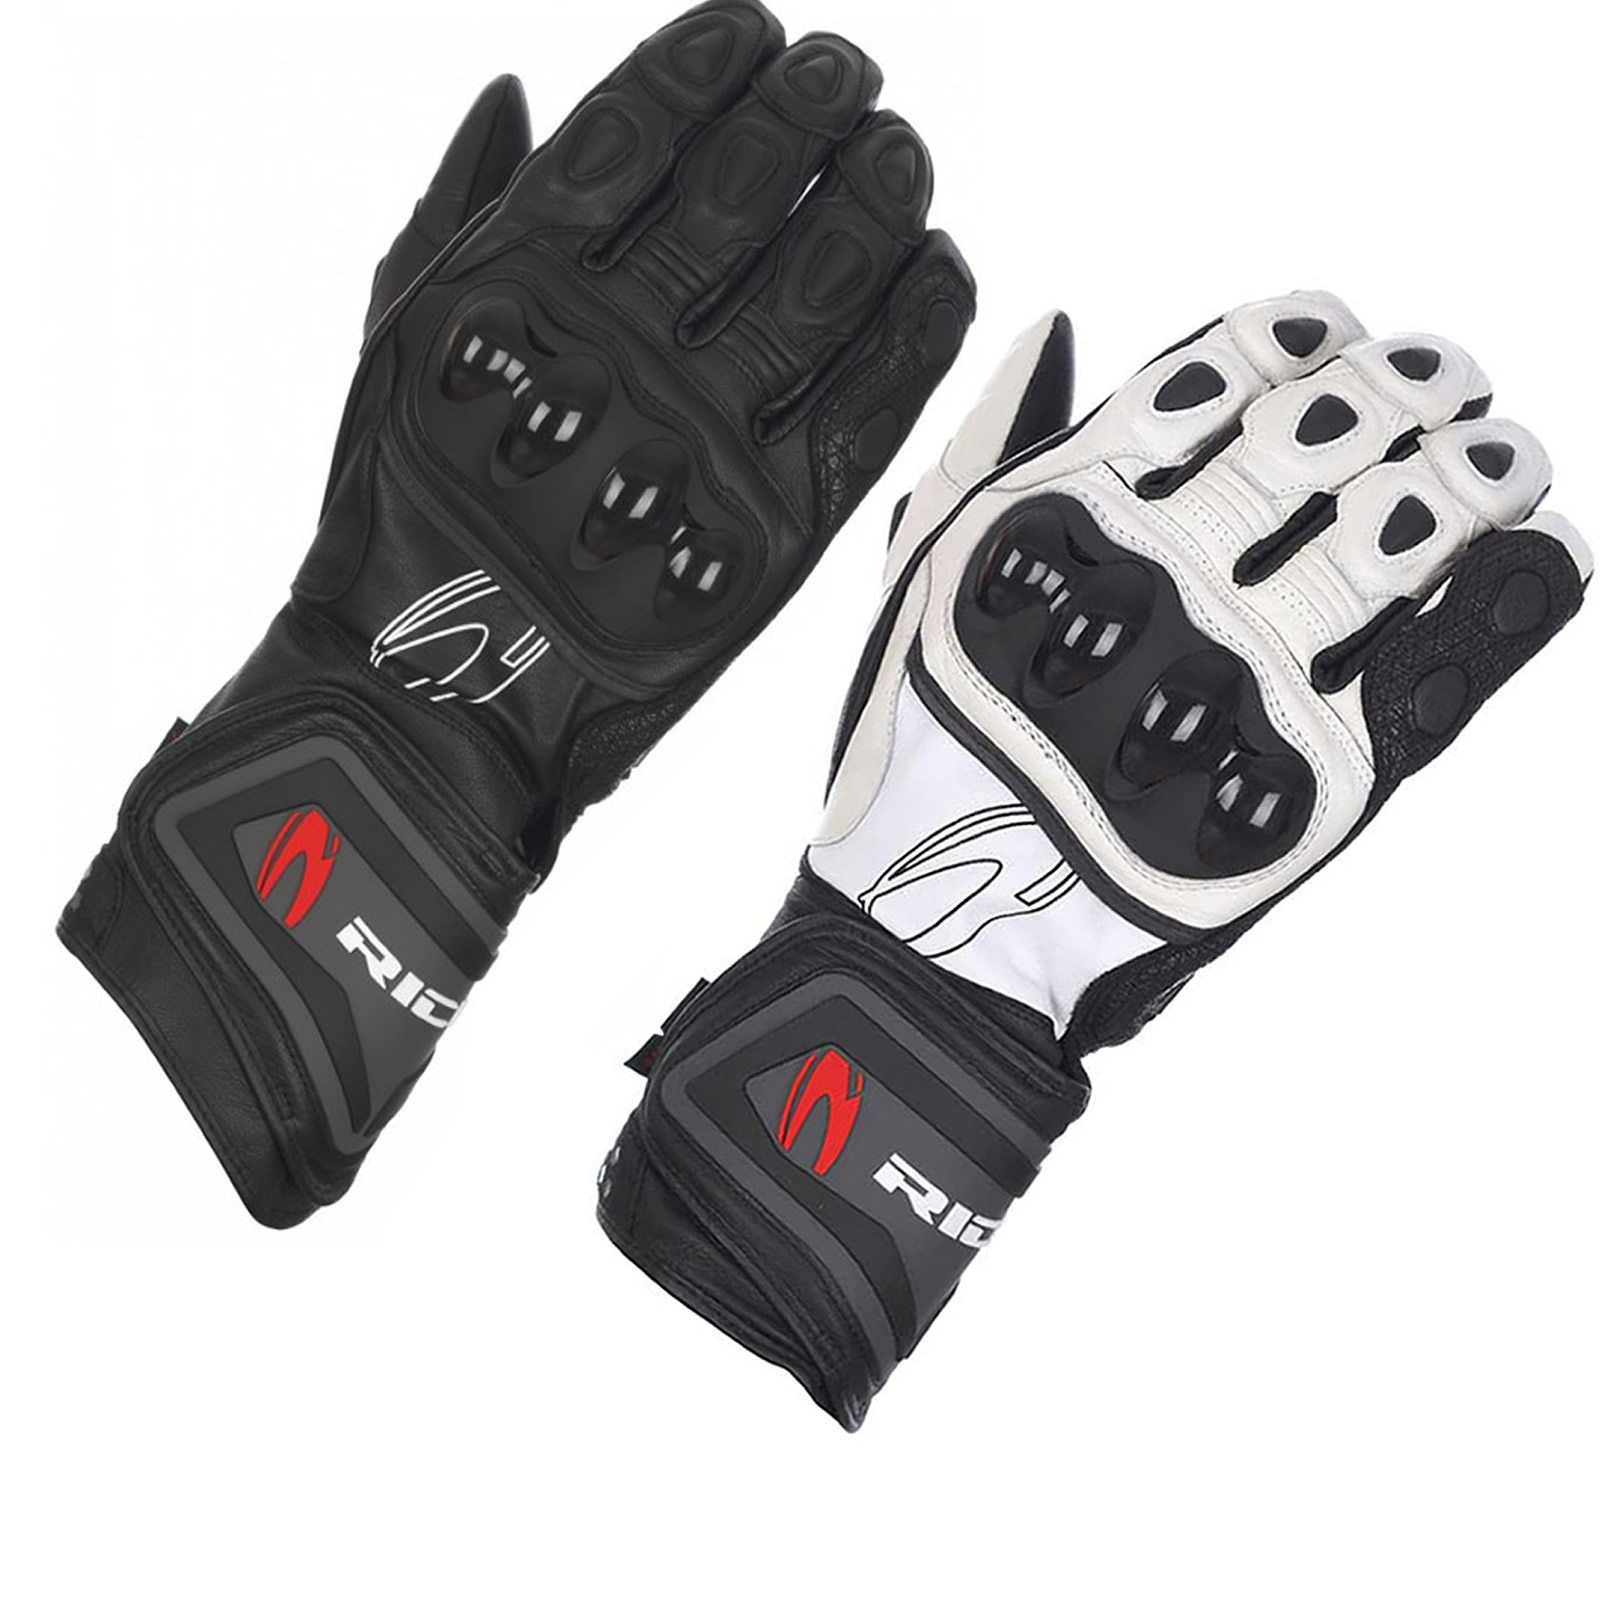 Motorcycle leather gloves waterproof -  Motorcycle Leather Gloves Waterproof Armoured Ce Protection Bike Preview 3 Thumbnail 1 Thumbnail 2